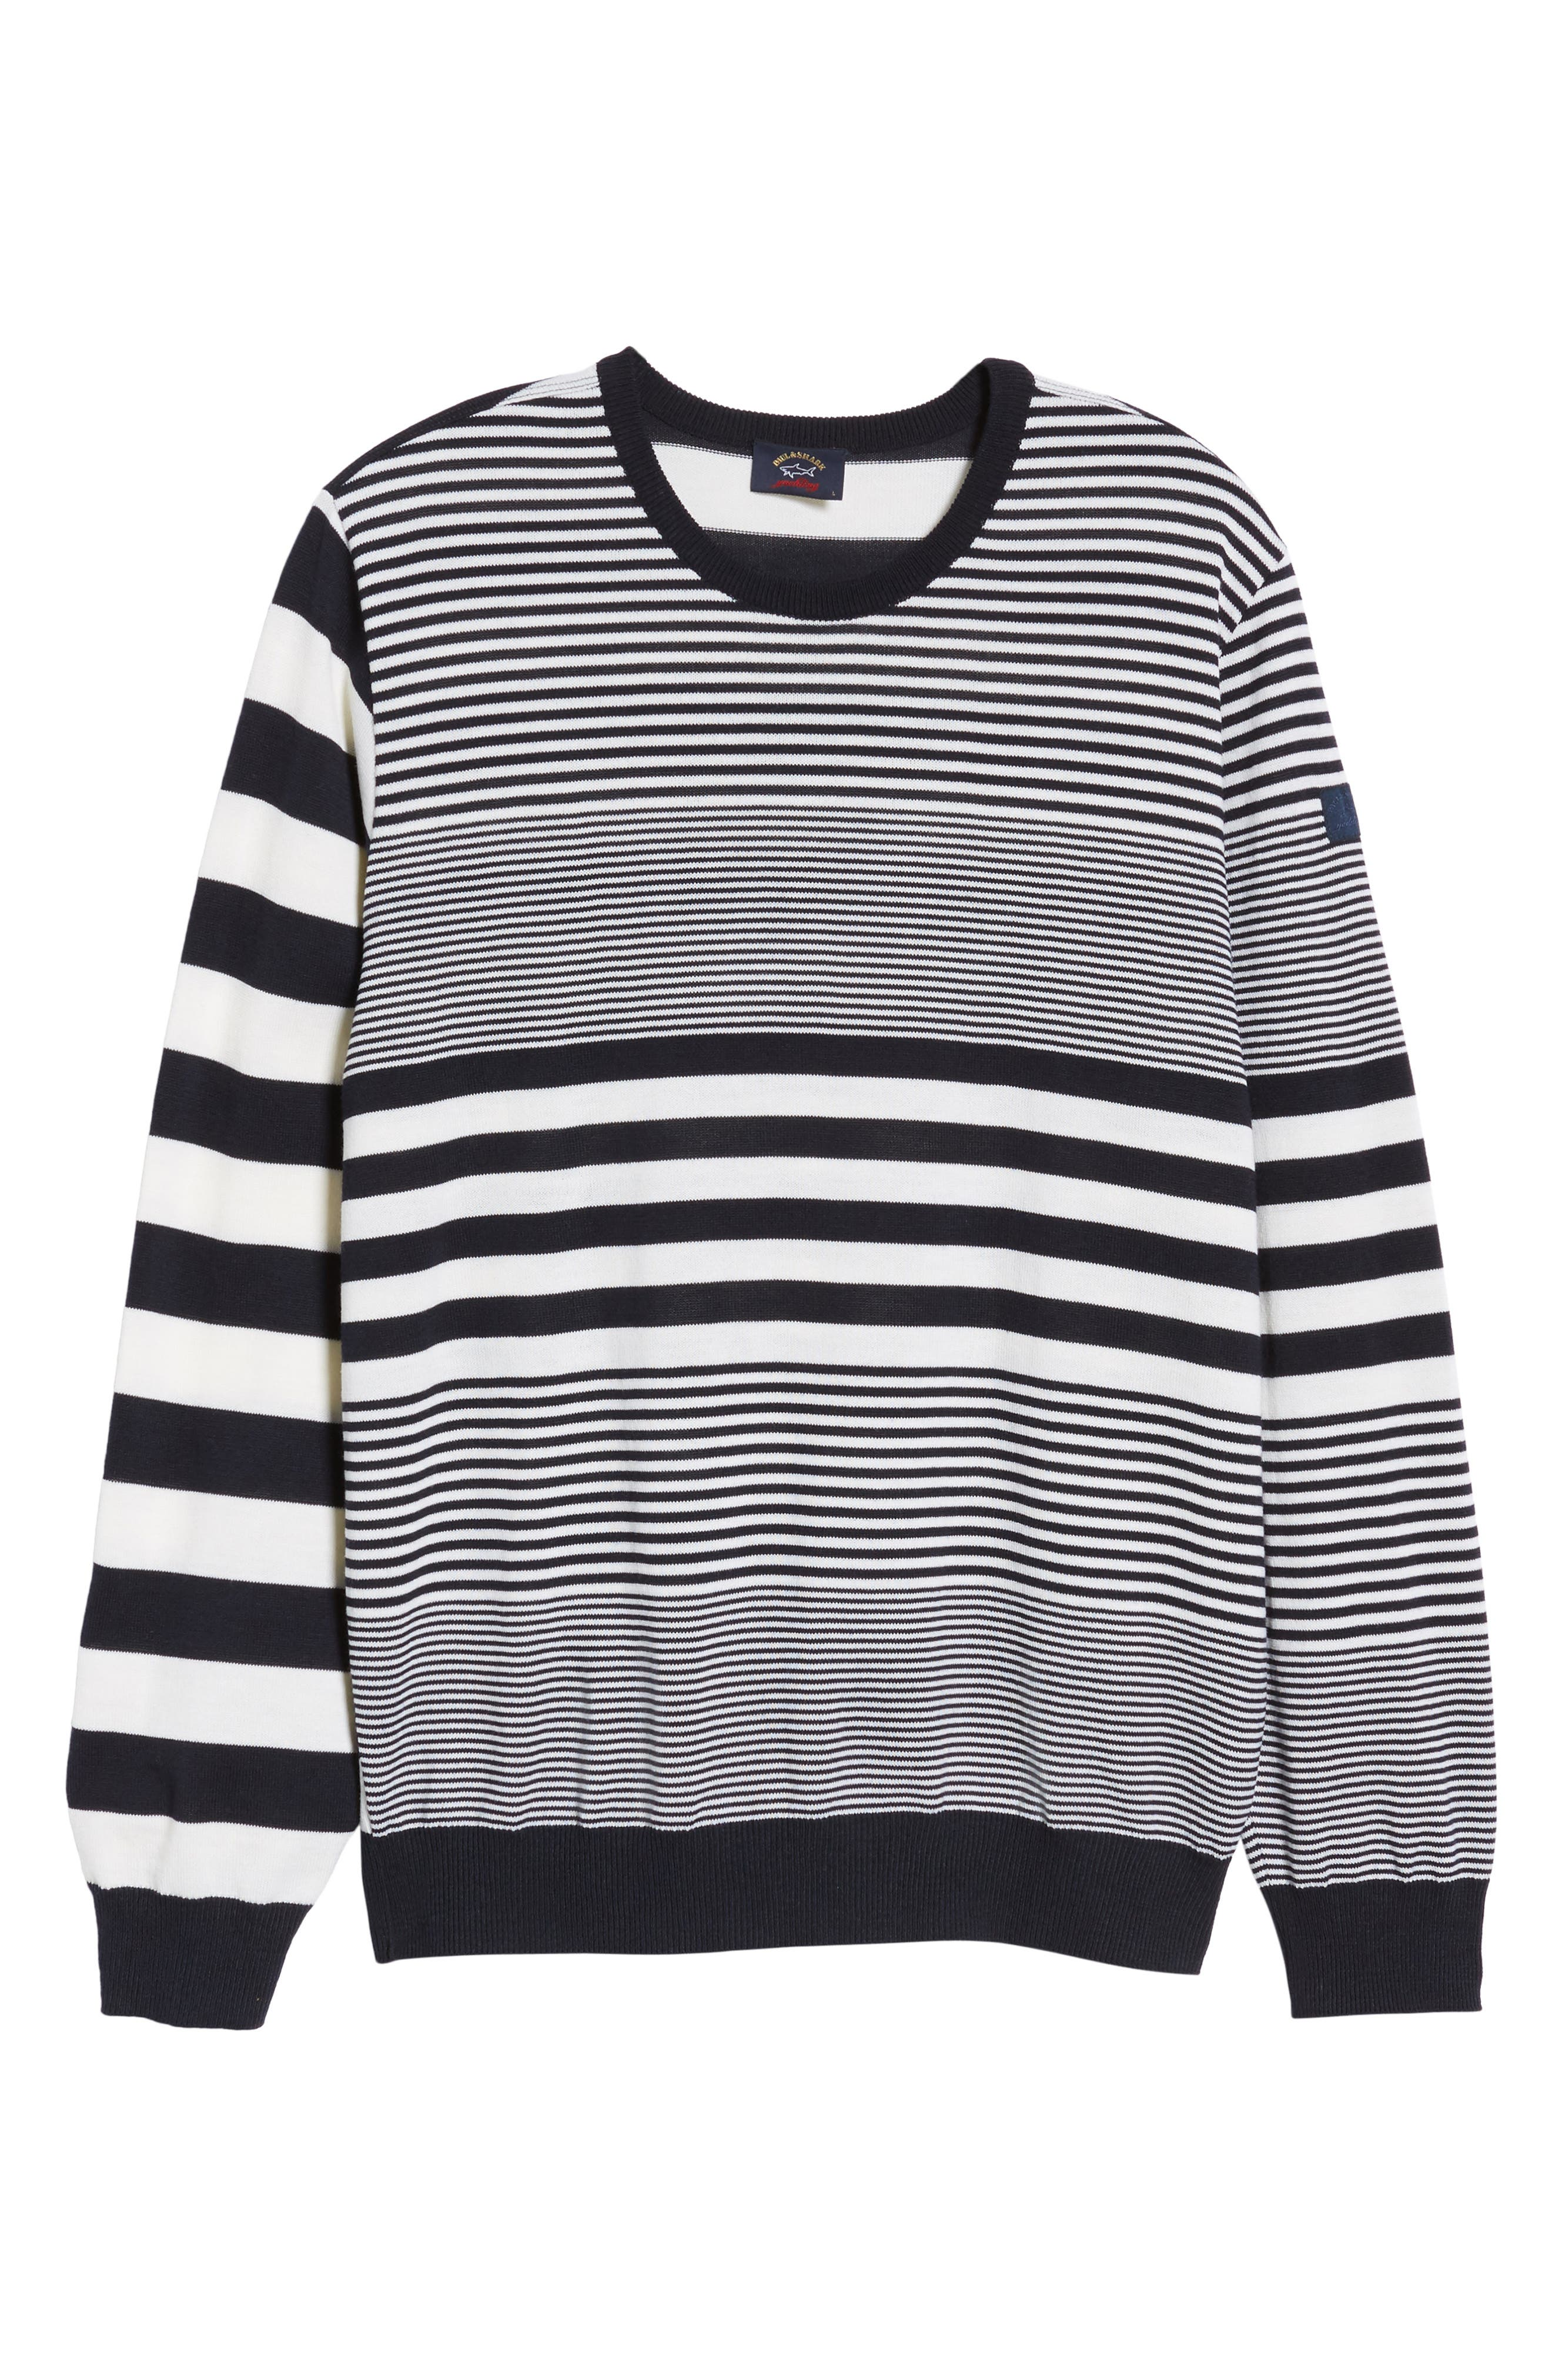 Paul&Shark Stripe Wool Sweater,                             Alternate thumbnail 6, color,                             115